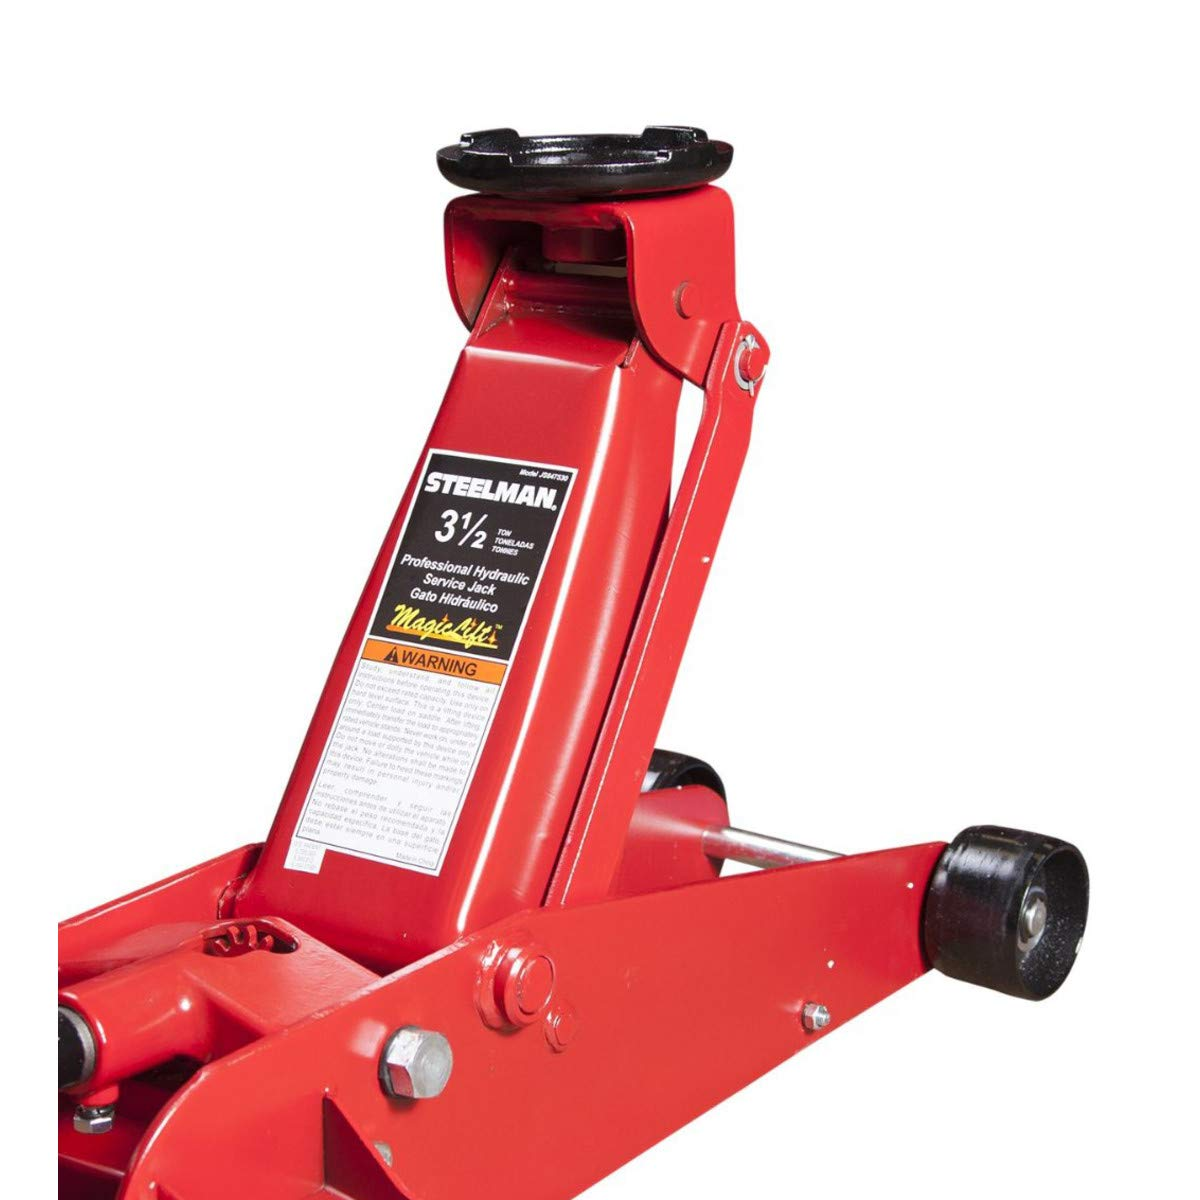 Amazon.com: STEELMAN JS647530 Roll-Around Jack - 3.5 Ton Capacity: Automotive